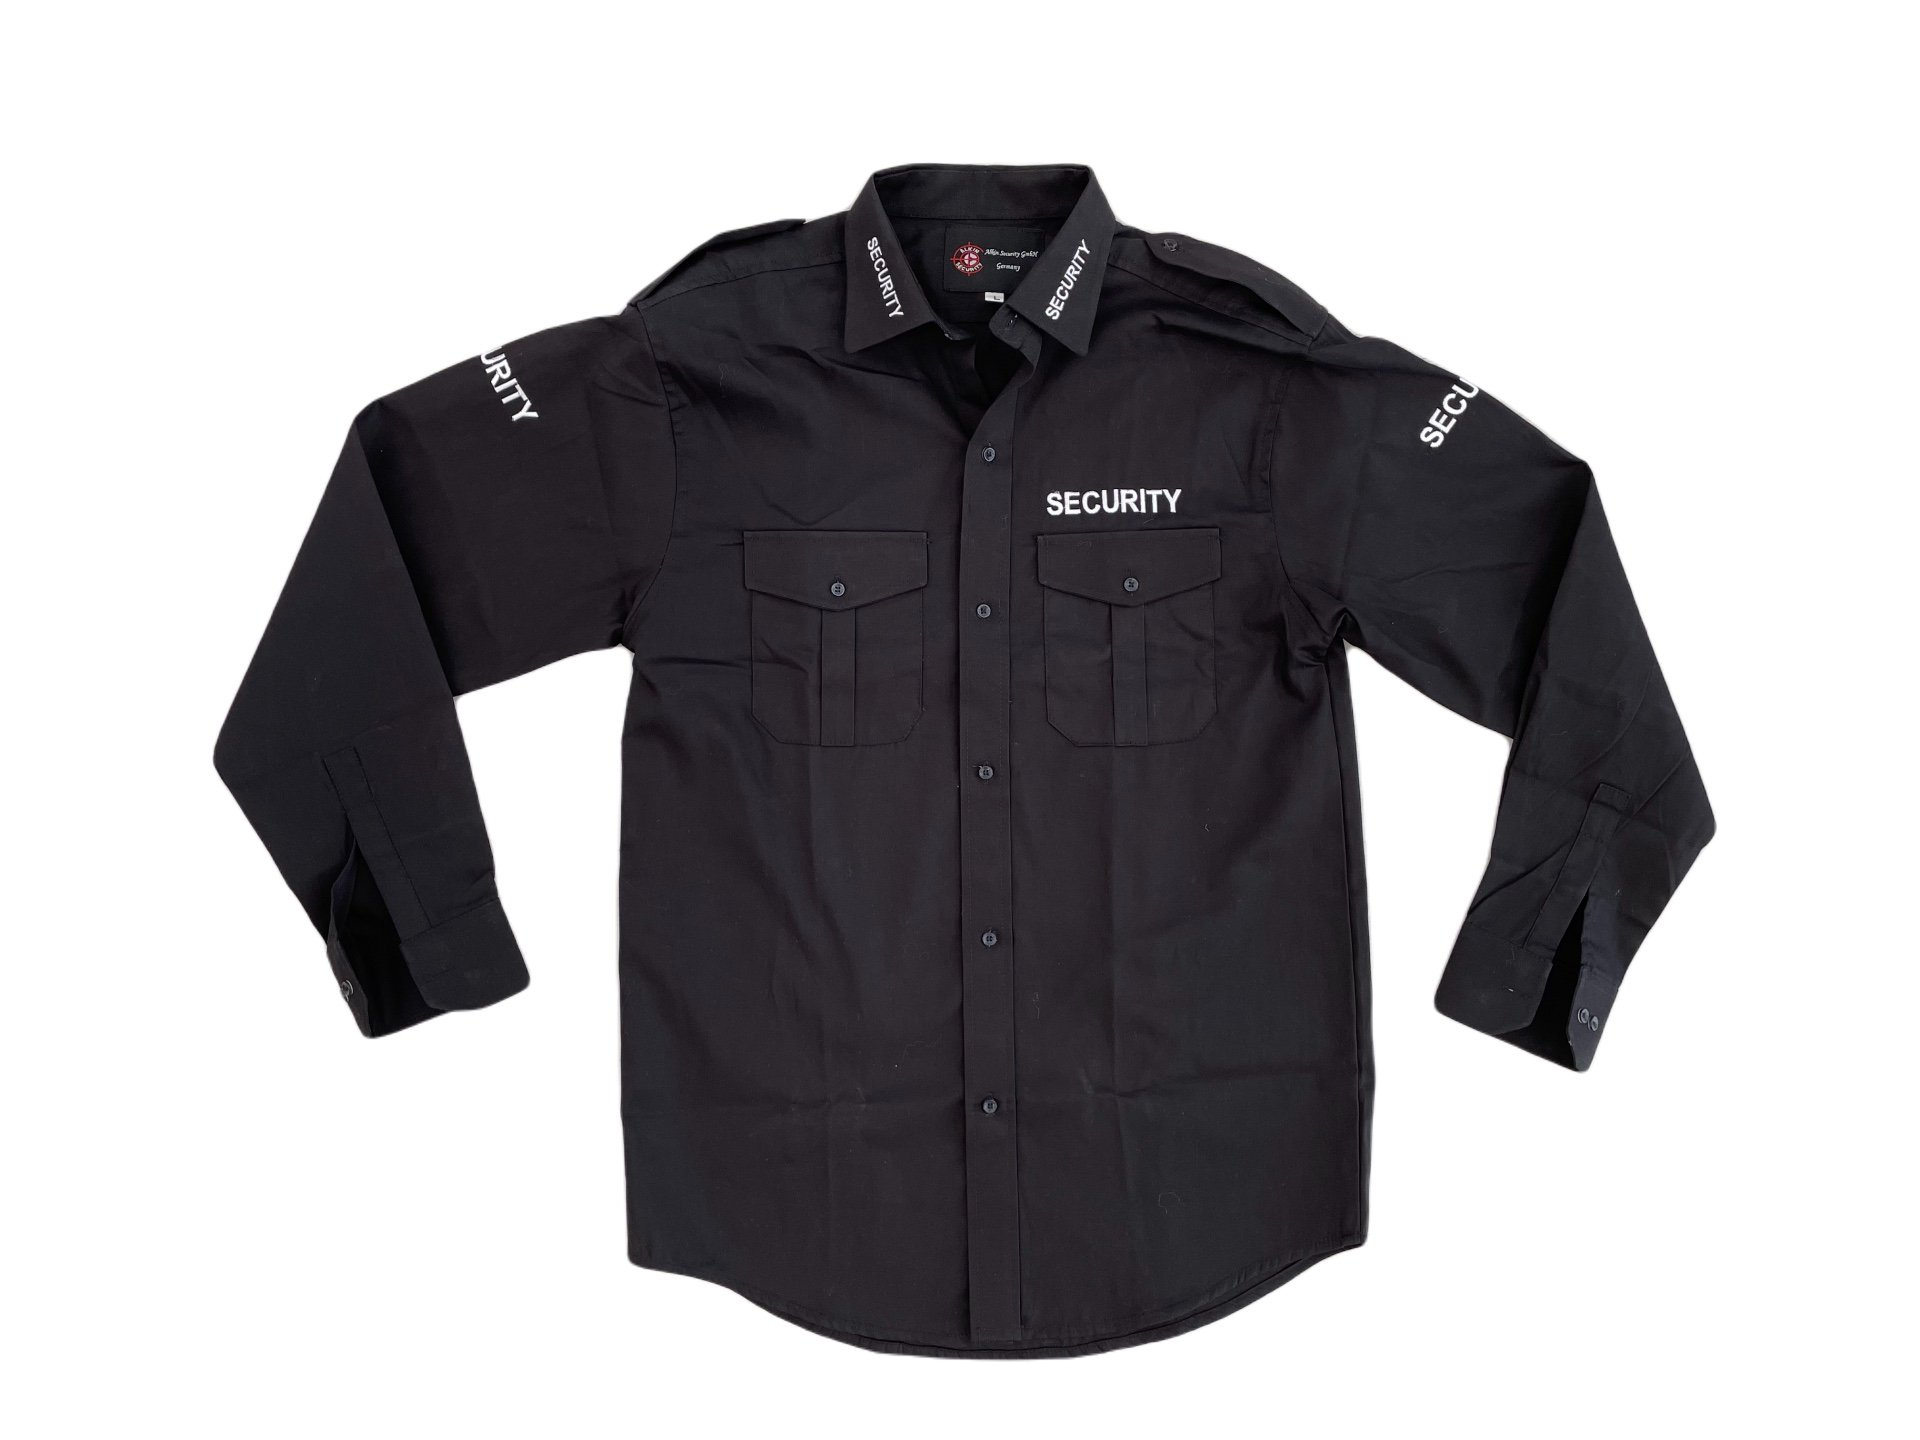 Security Hemd mit Security-Aufdruck - Schwarz - Logo-https://ik.imagekit.io/alkinsecurity/products/1000004_Qbv3wgWjz.jpg